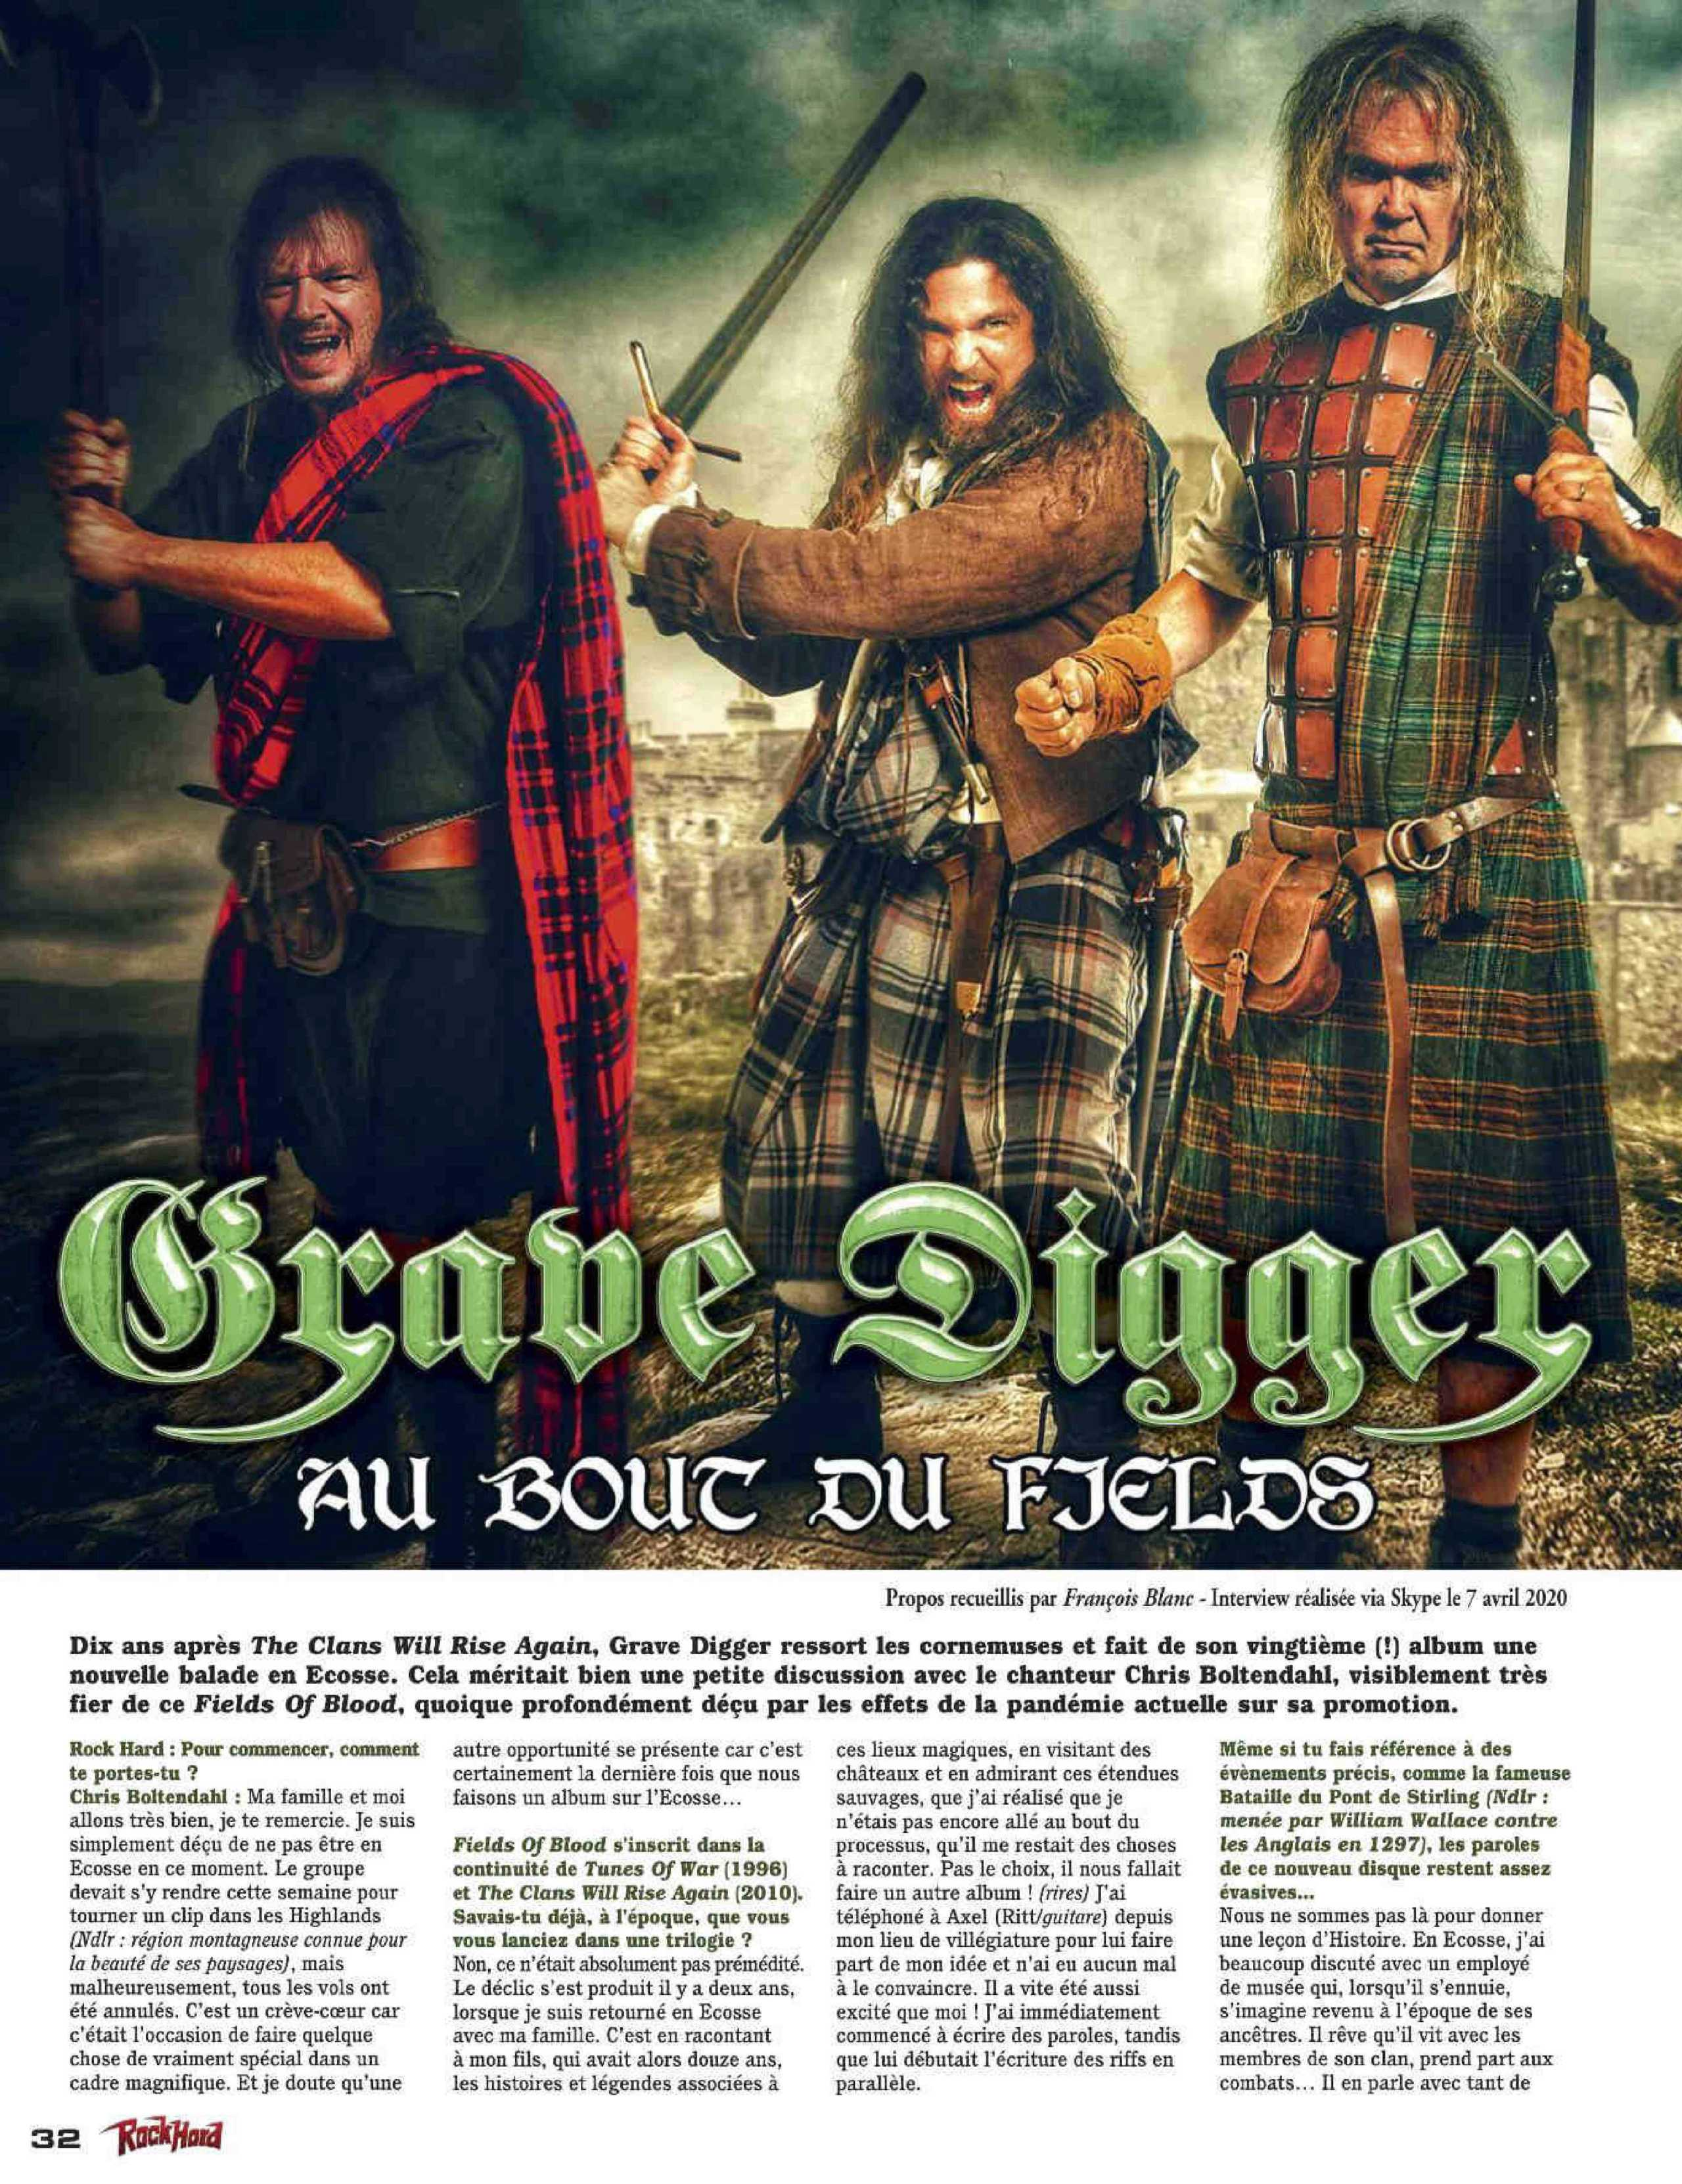 GRAVE DIGGER Fields of Blood (2020) Heavy/Power Metal ALLEMAGNE Rock_h17